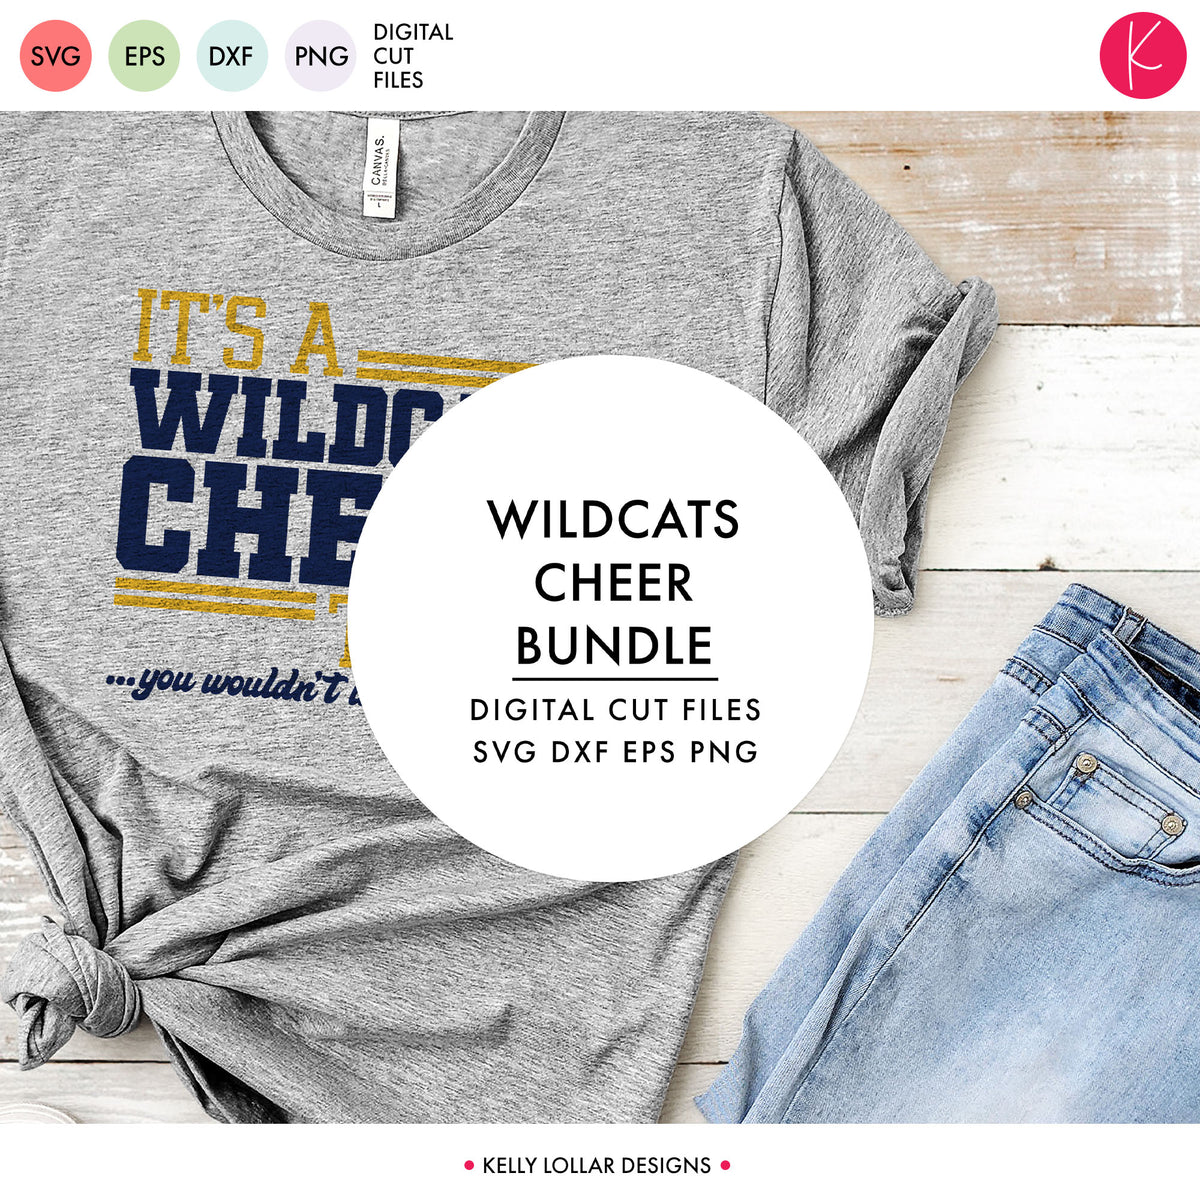 Wildcats Cheer Bundle | SVG DXF EPS PNG Cut Files